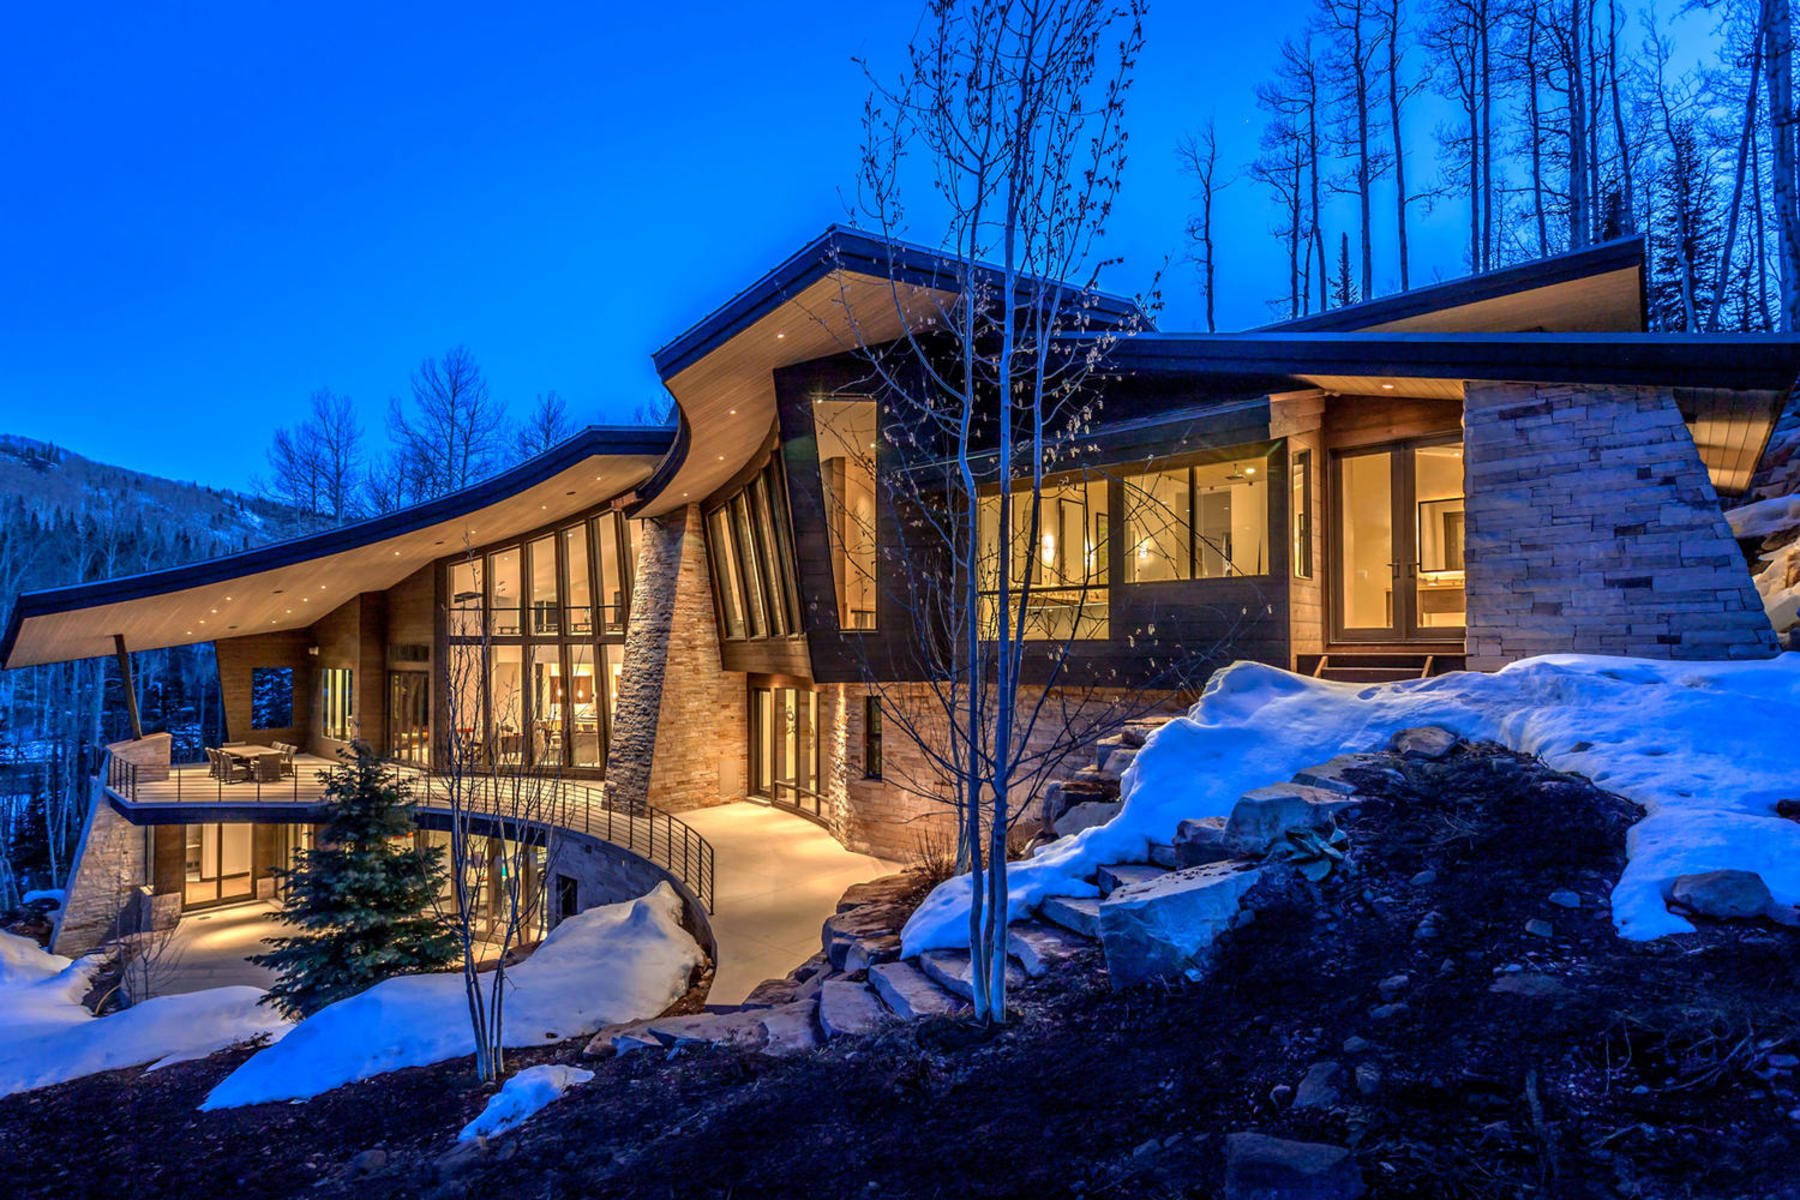 独户住宅 为 销售 在 Stunning Mountain Modern Ski Escape 184 White Pine Canyon Rd Park City, 犹他州 84060 美国